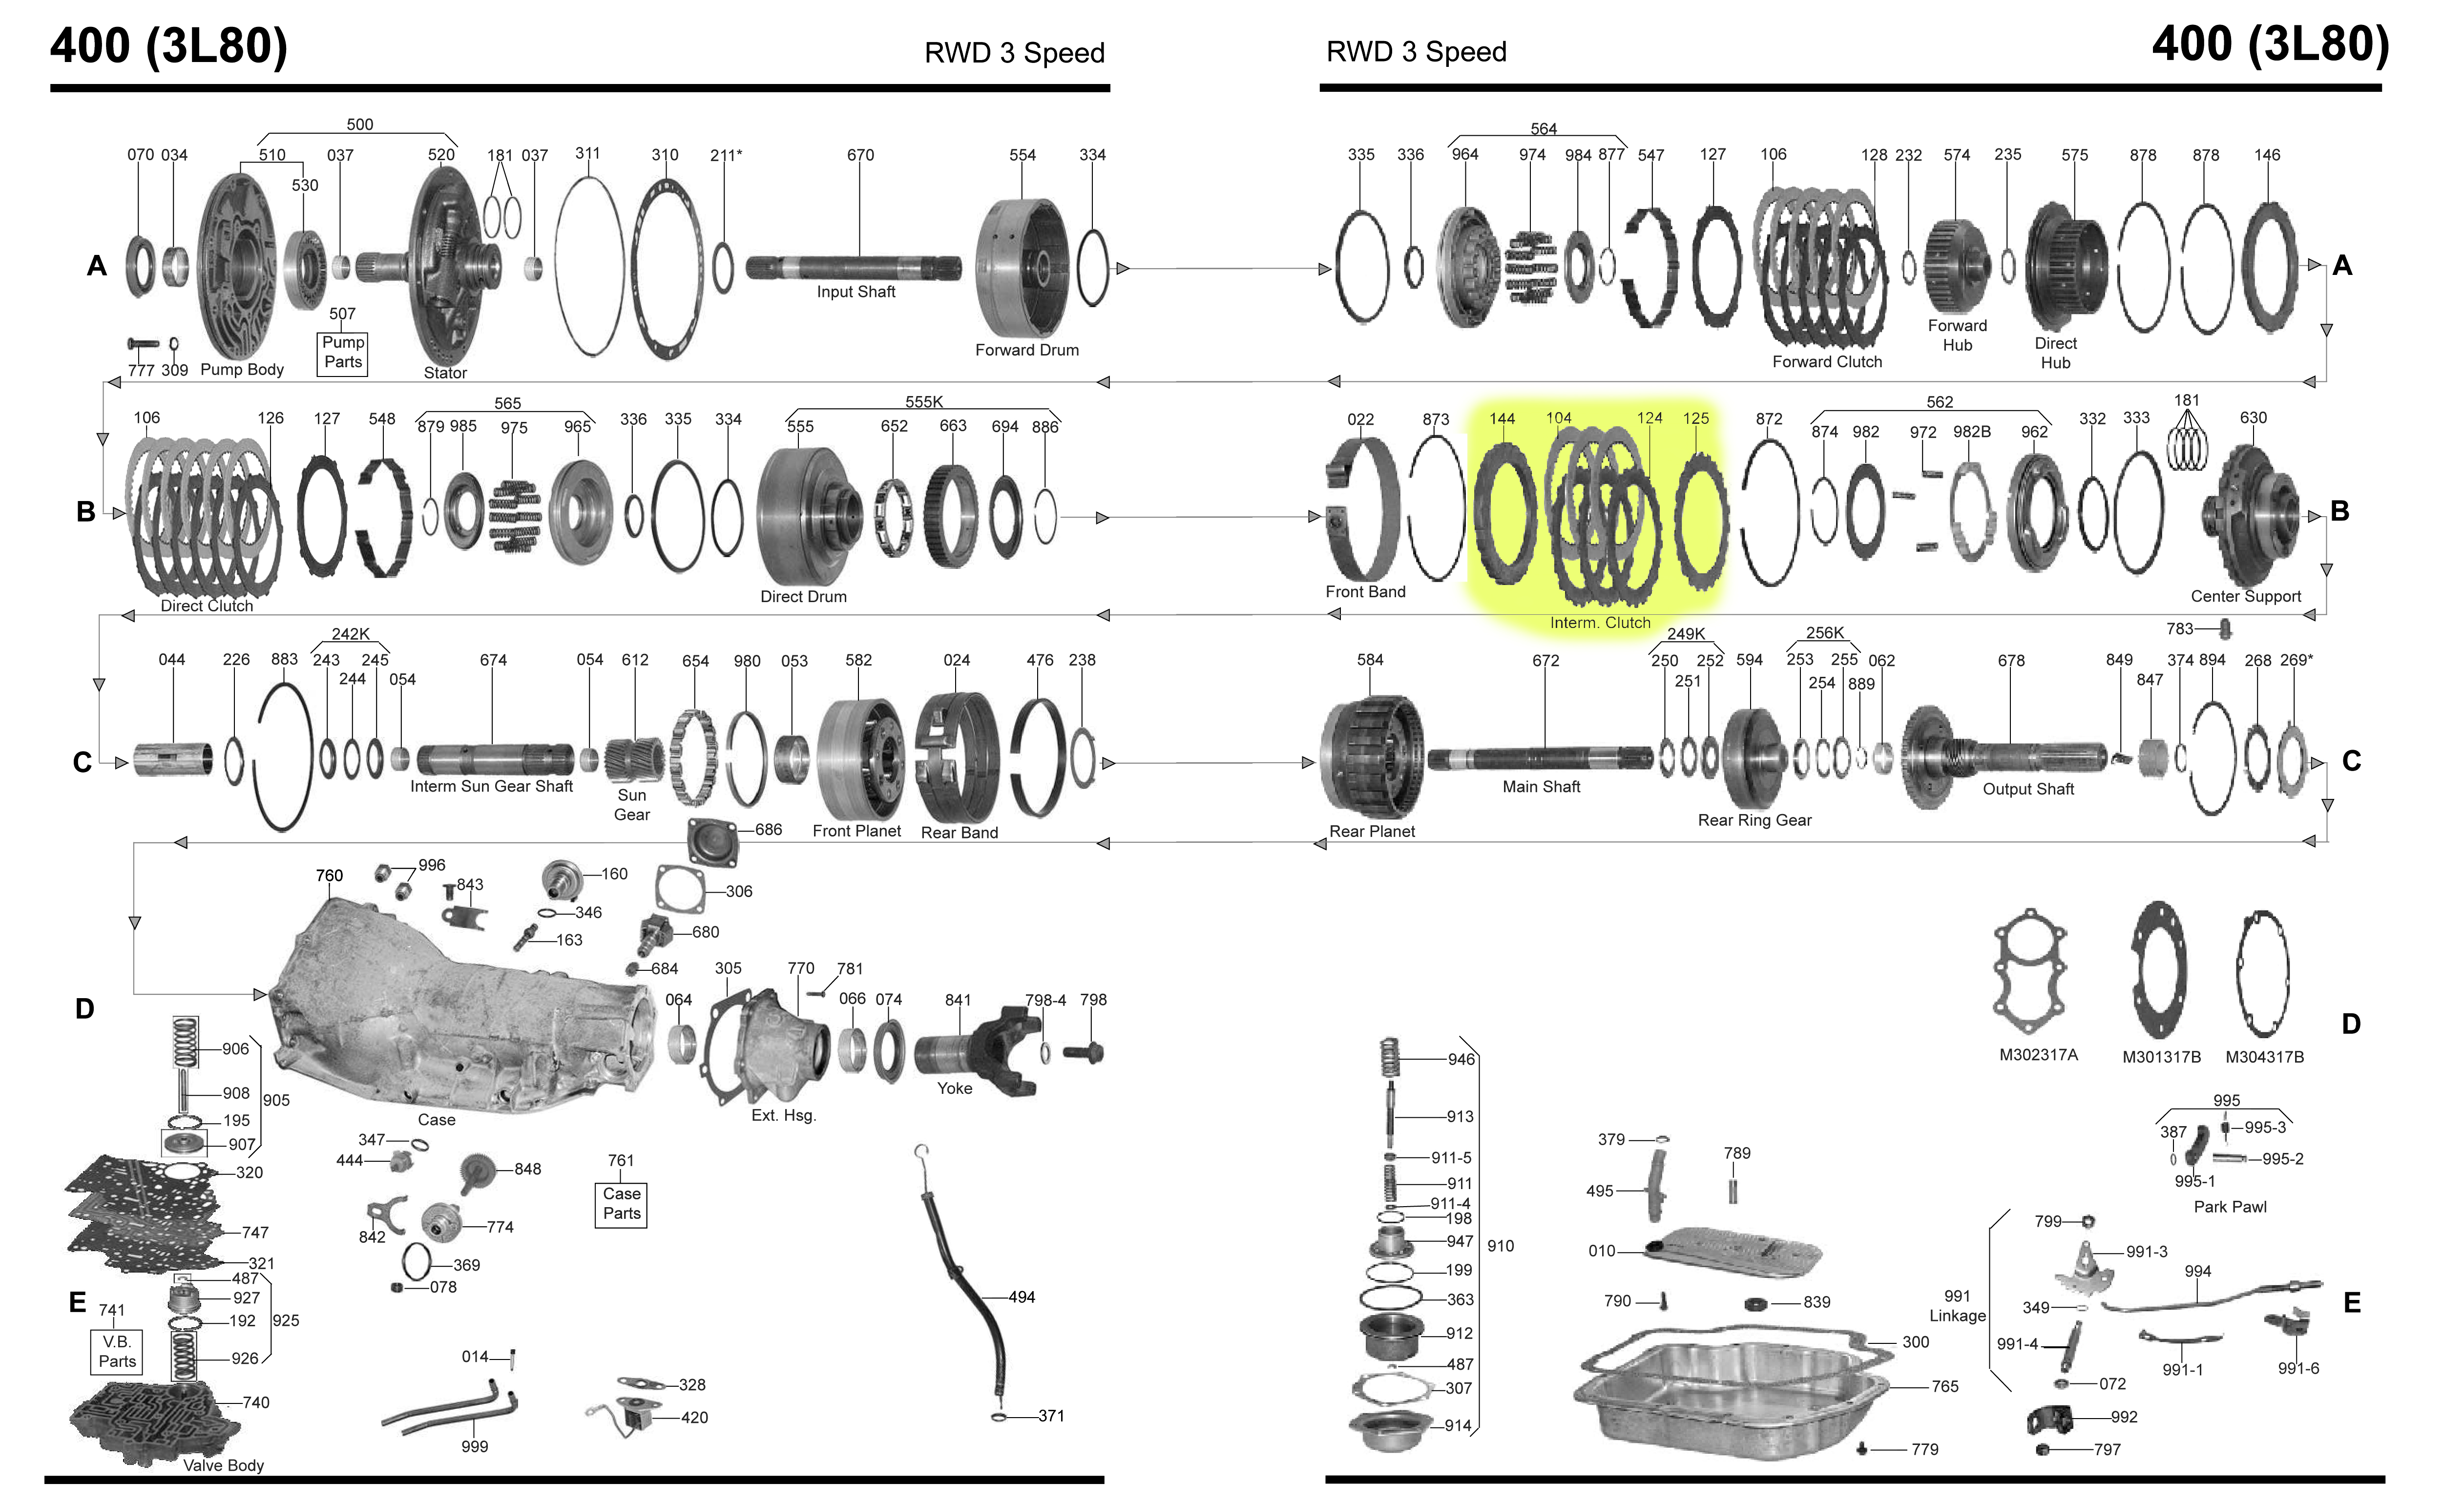 gm 700r4 wiring diagram vf 4050  700r4 transmission parts diagram free download wiring  700r4 transmission parts diagram free